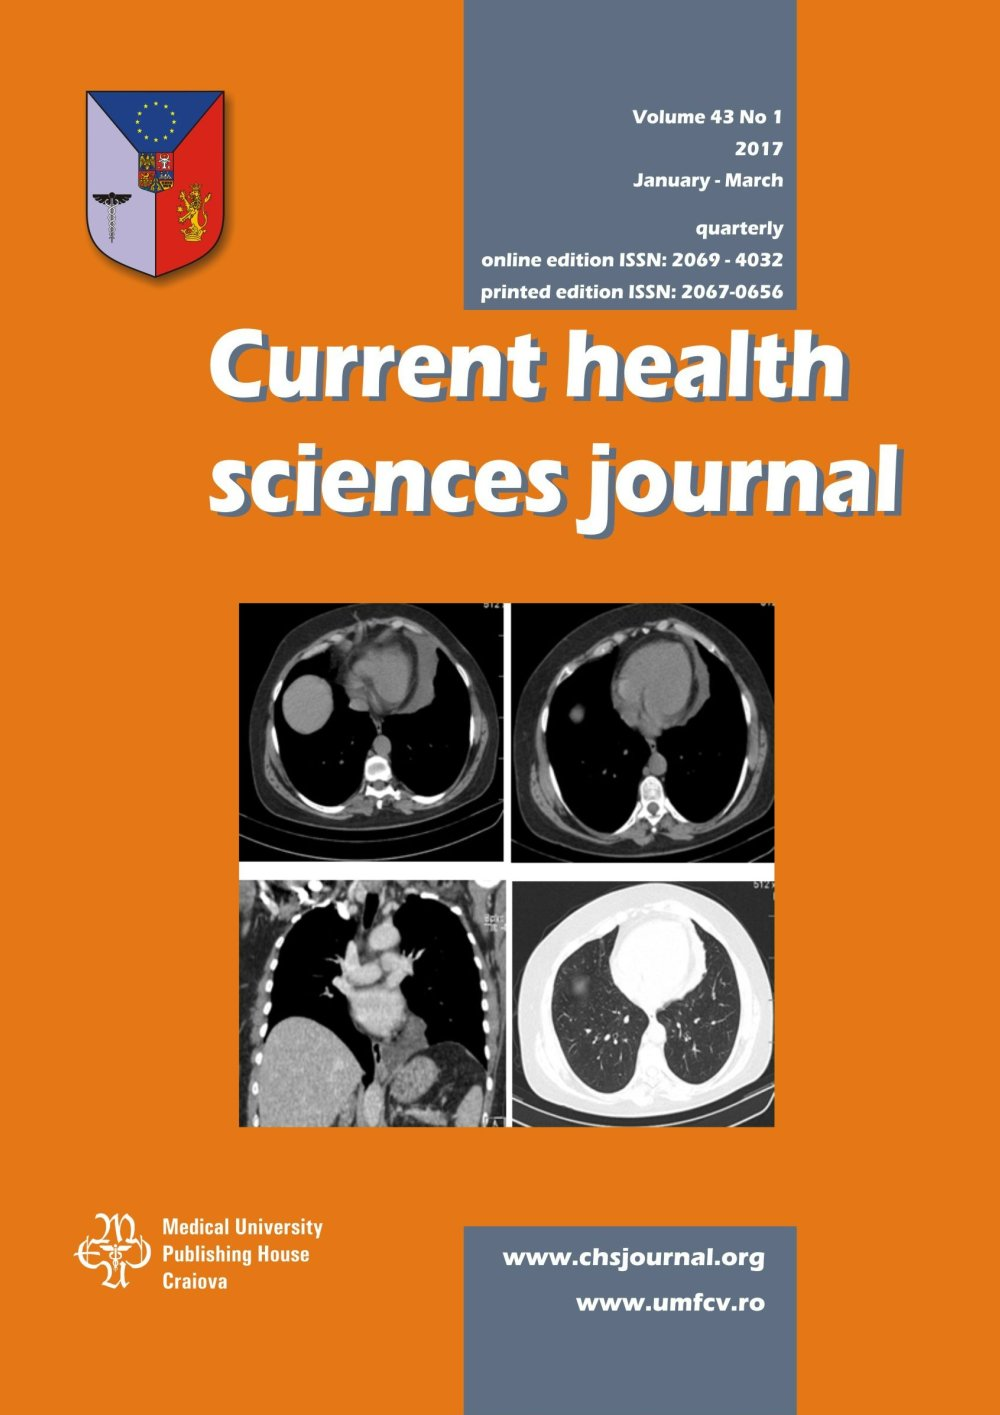 Current Health Sciences Journal, vol. 43 no. 1, 2017